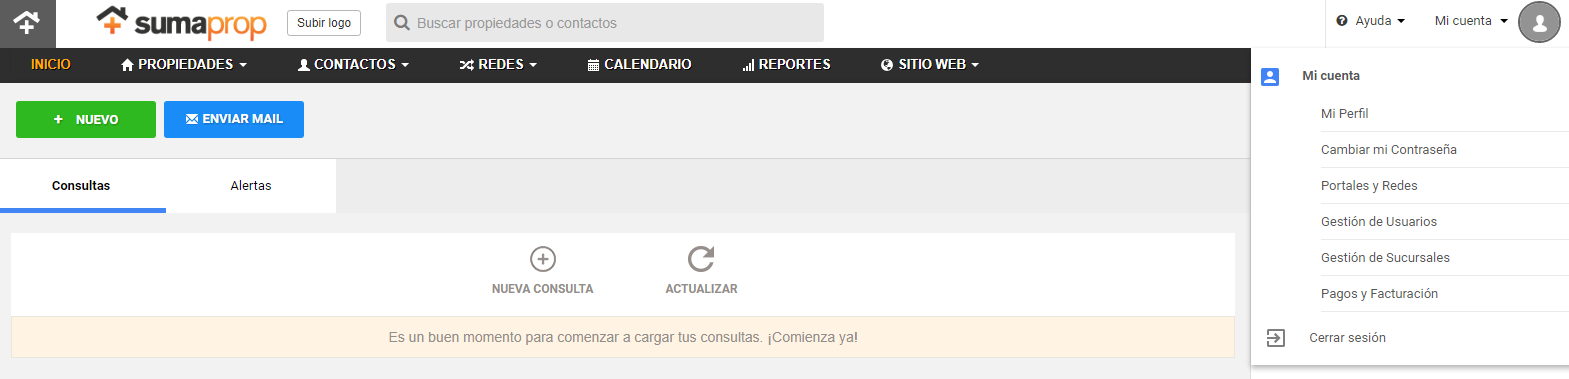 "Select the ""Portales y Redes"" option."